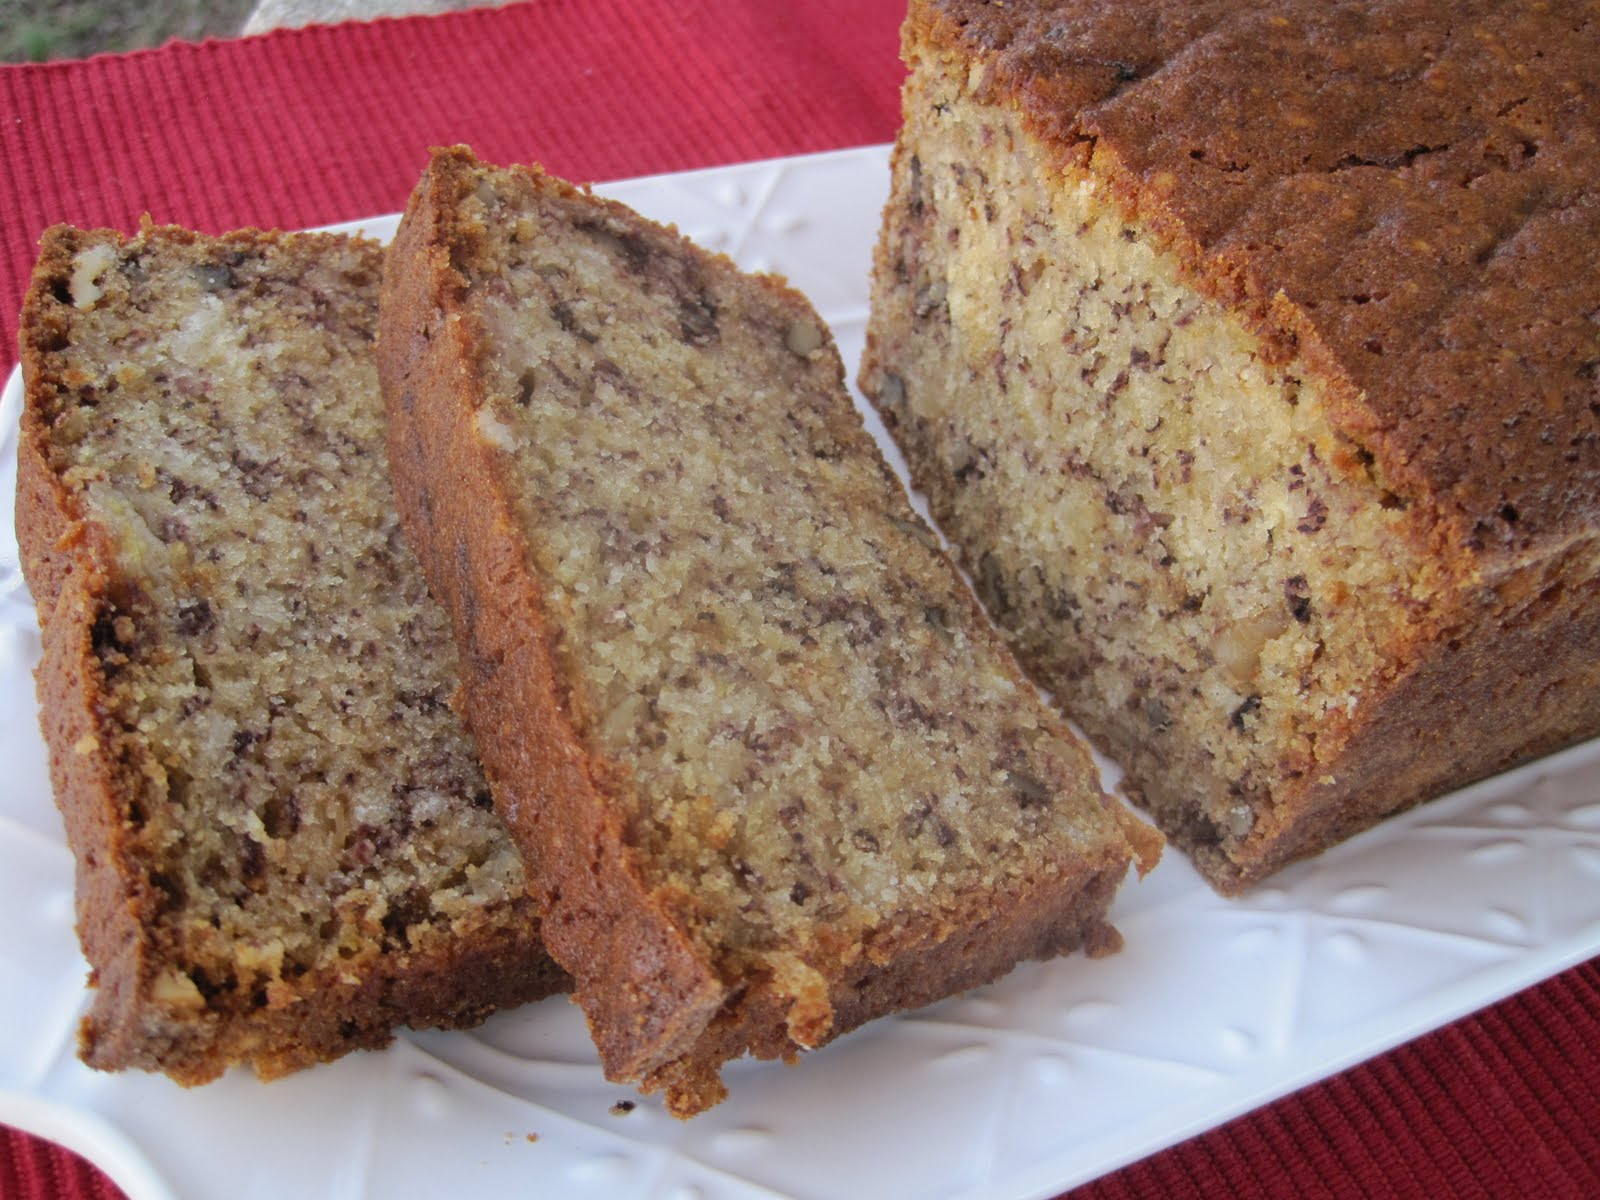 Lynda S Recipe Box Very Moist Bannana Bread With Walnuts